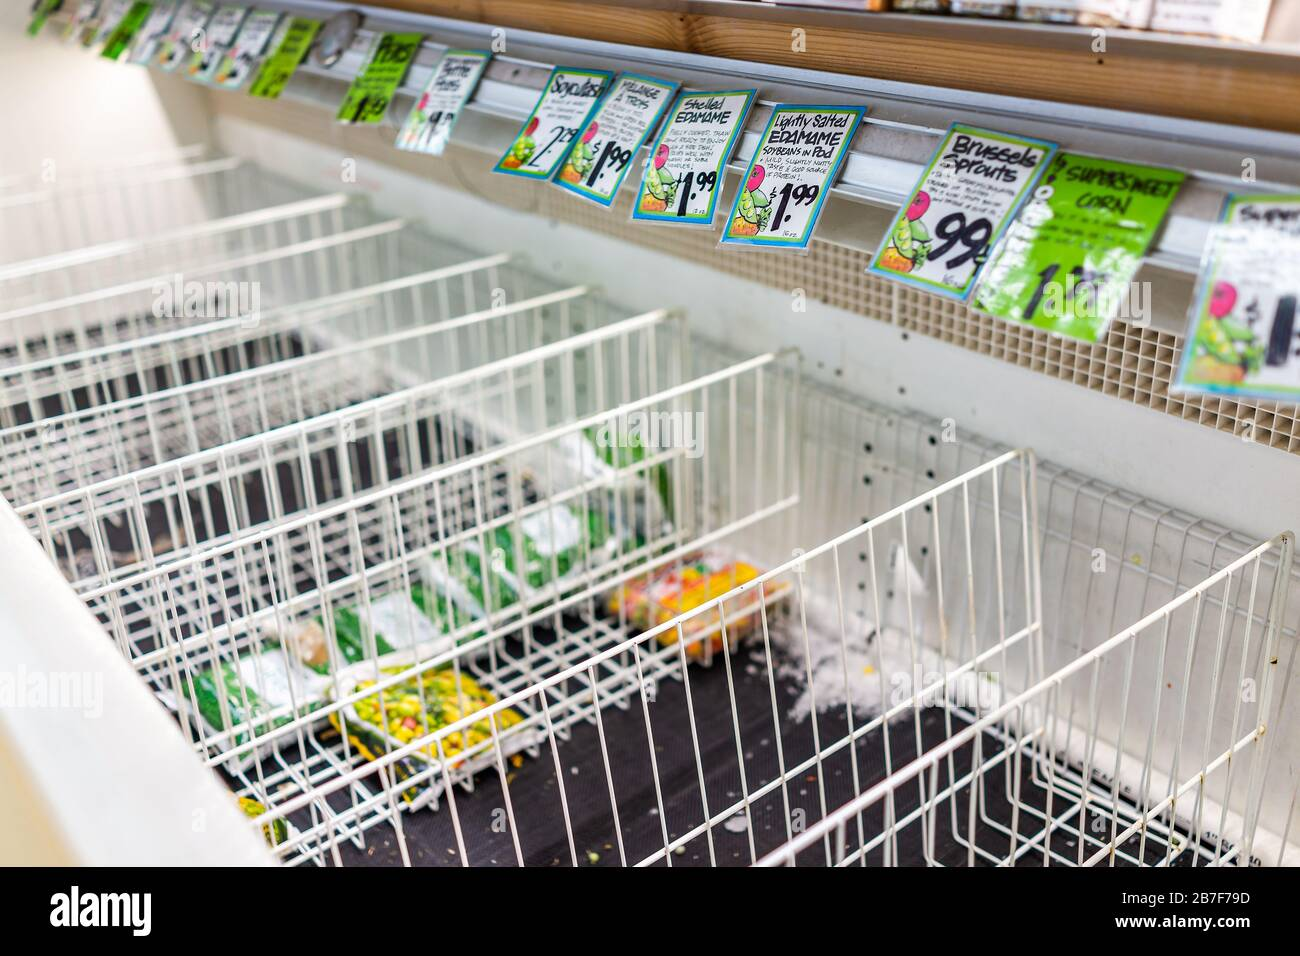 Reston, USA - March 13, 2020: Sold out empty refrigerator freezer shelf racks with frozen vegetable grocery food produce, price tags at Trader Joe's s Stock Photo